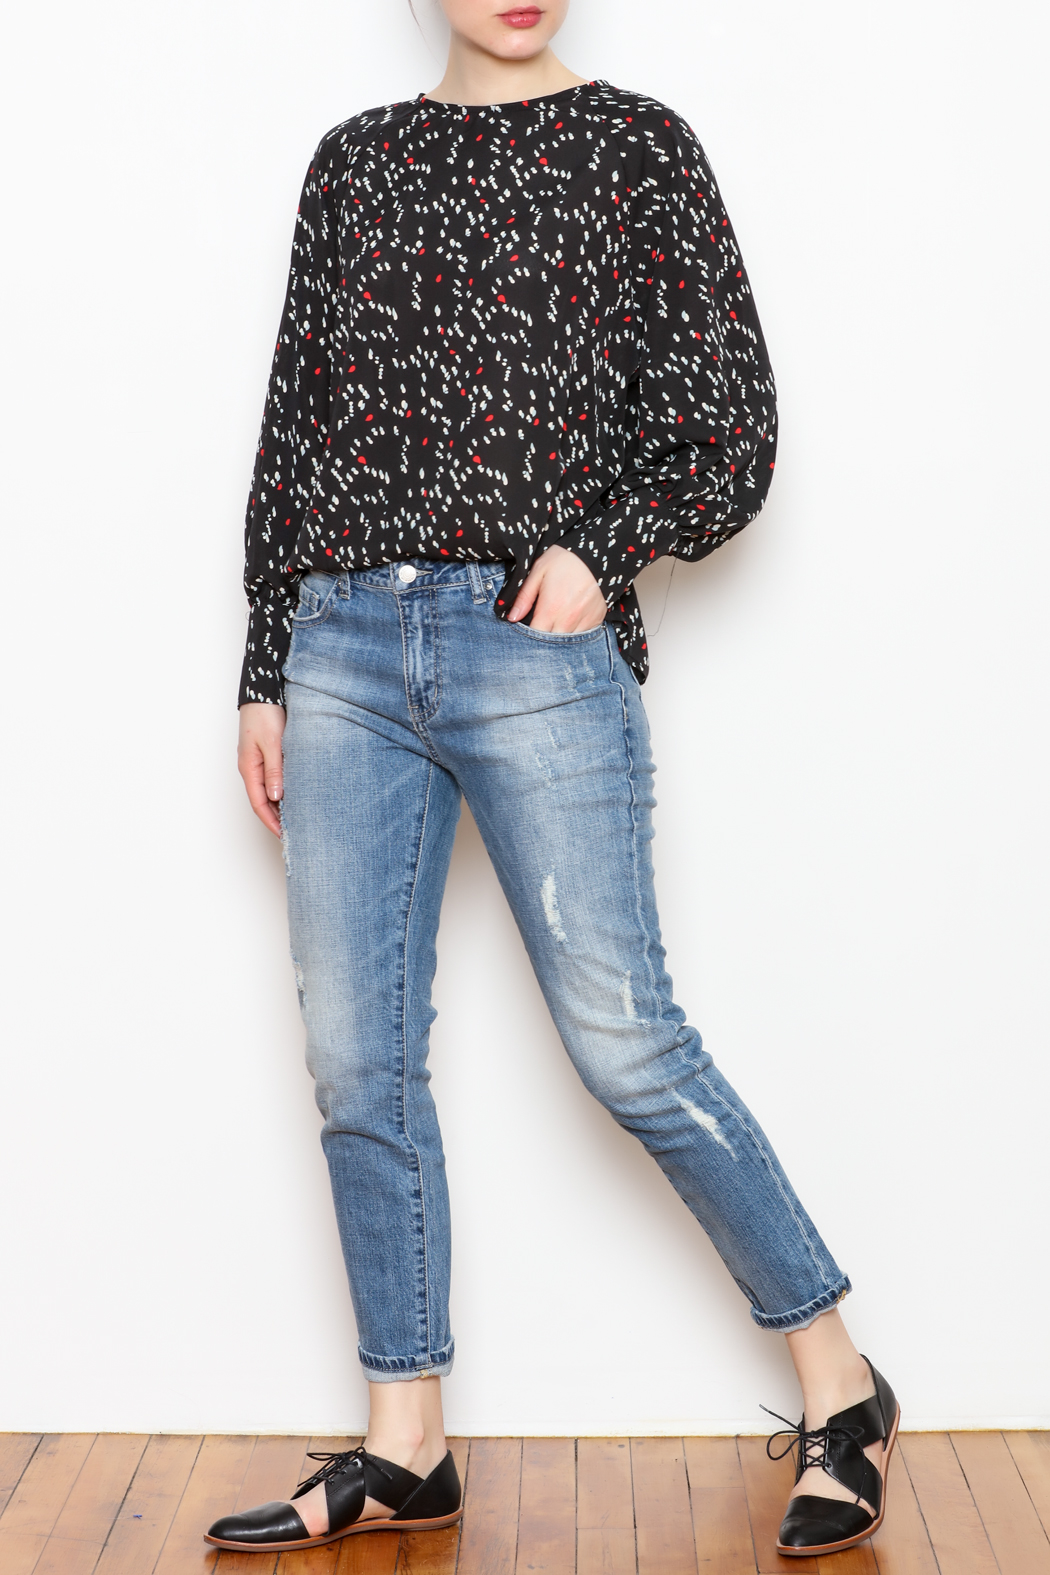 NU New York Back Button Printed Blouse - Front Full Image